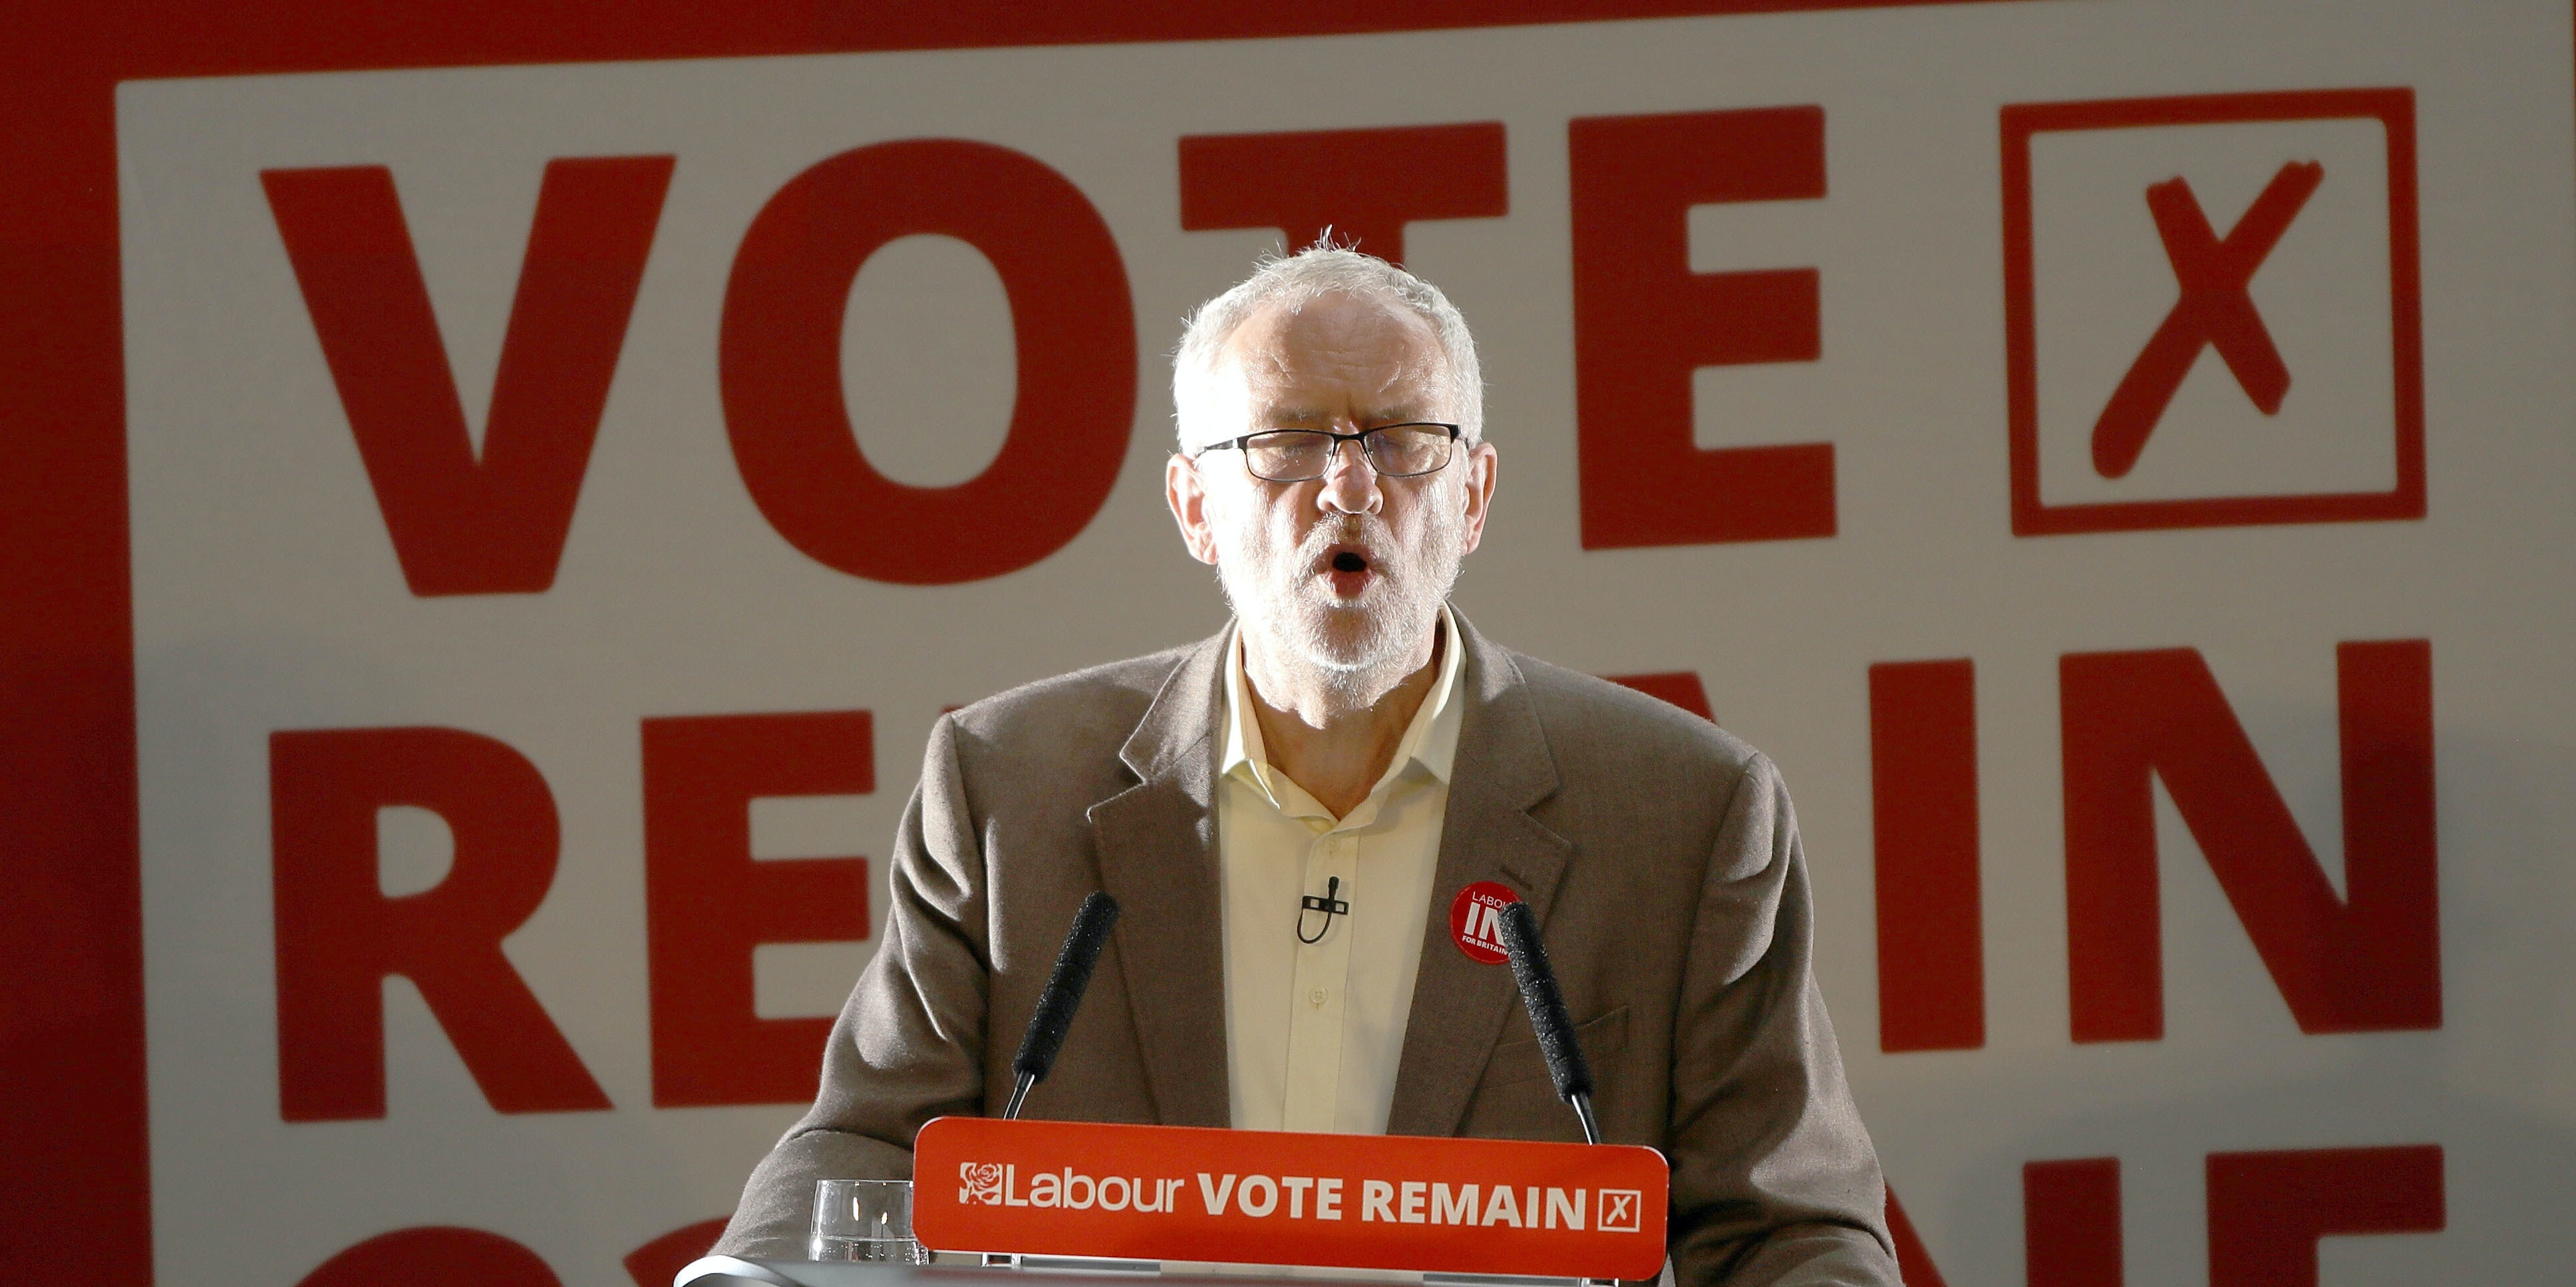 MANCHESTER, UNITED KINGDOM - JUNE 21: Labour Leader Jeremy Corbyn addresses an audience at the People's History Museum and sets out the reasons why Labour is voting remain, in the referendum on June 21, 2016 in Manchester, England. In the final few days of the EU referendum Jeremy Corbyn,  Kate Green MP and Alan Johnson MP, set out the positive case as to why the Labour party is voting to remain. Campaigning continues across the UK as the country prepares to go to the polls on Thursday, to decide whether Britain should leave or remain in the European Union (Photo by Christopher Furlong/Getty Images)